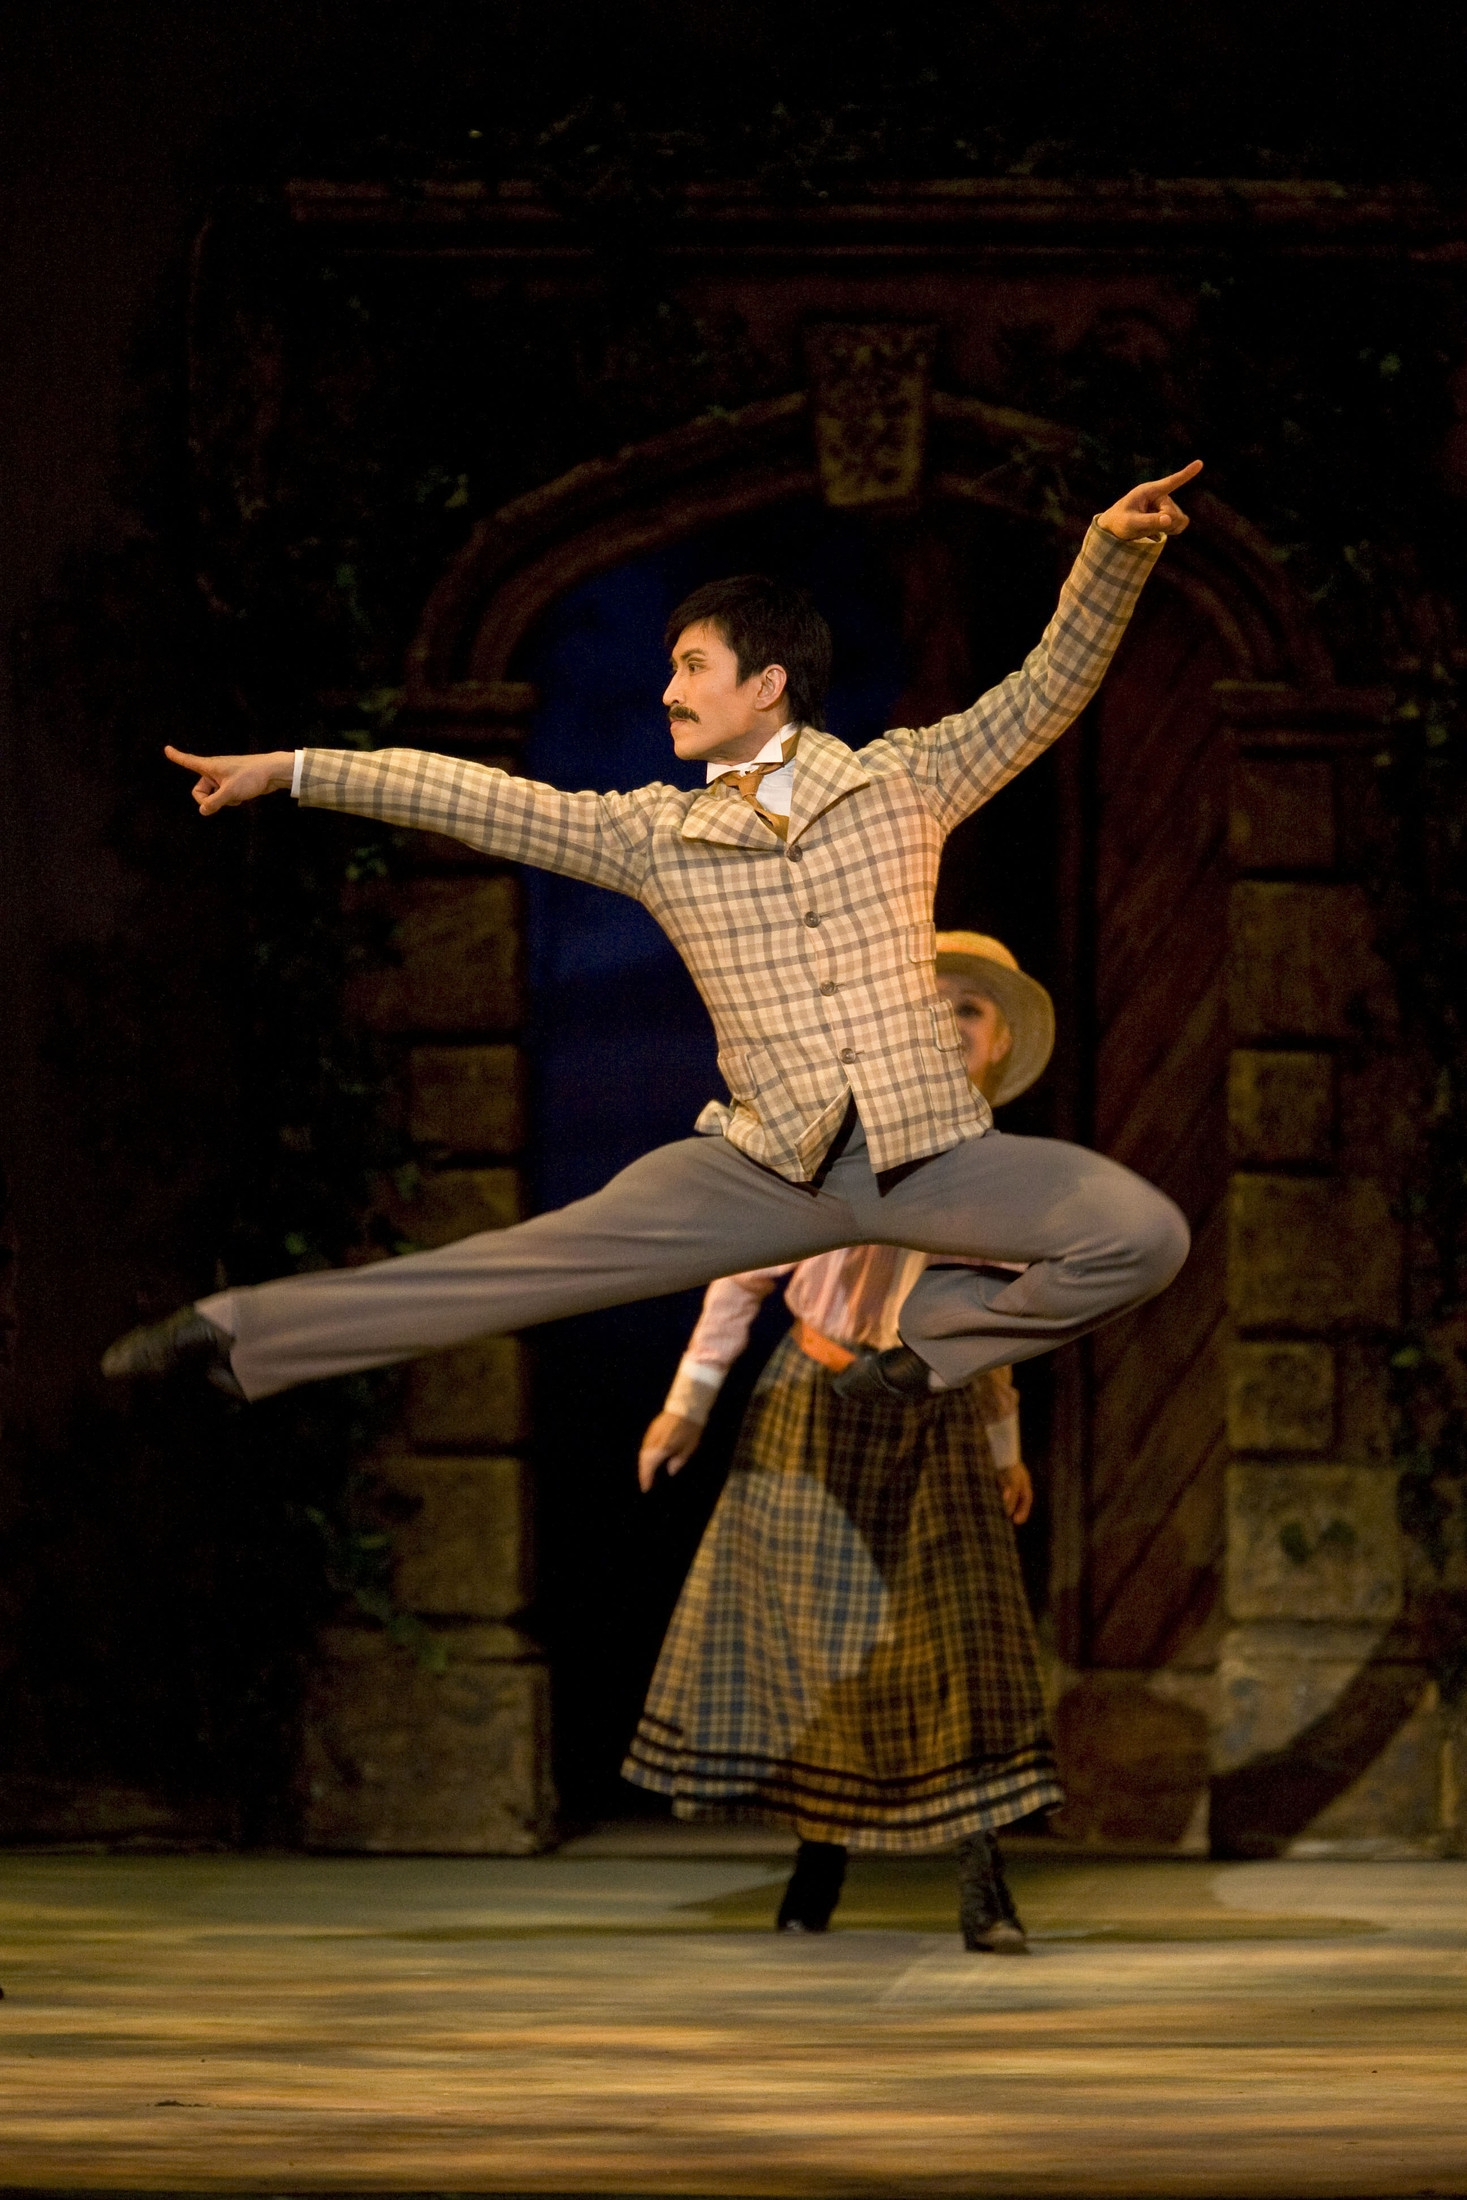 male ballet dancer jumps very high on stage